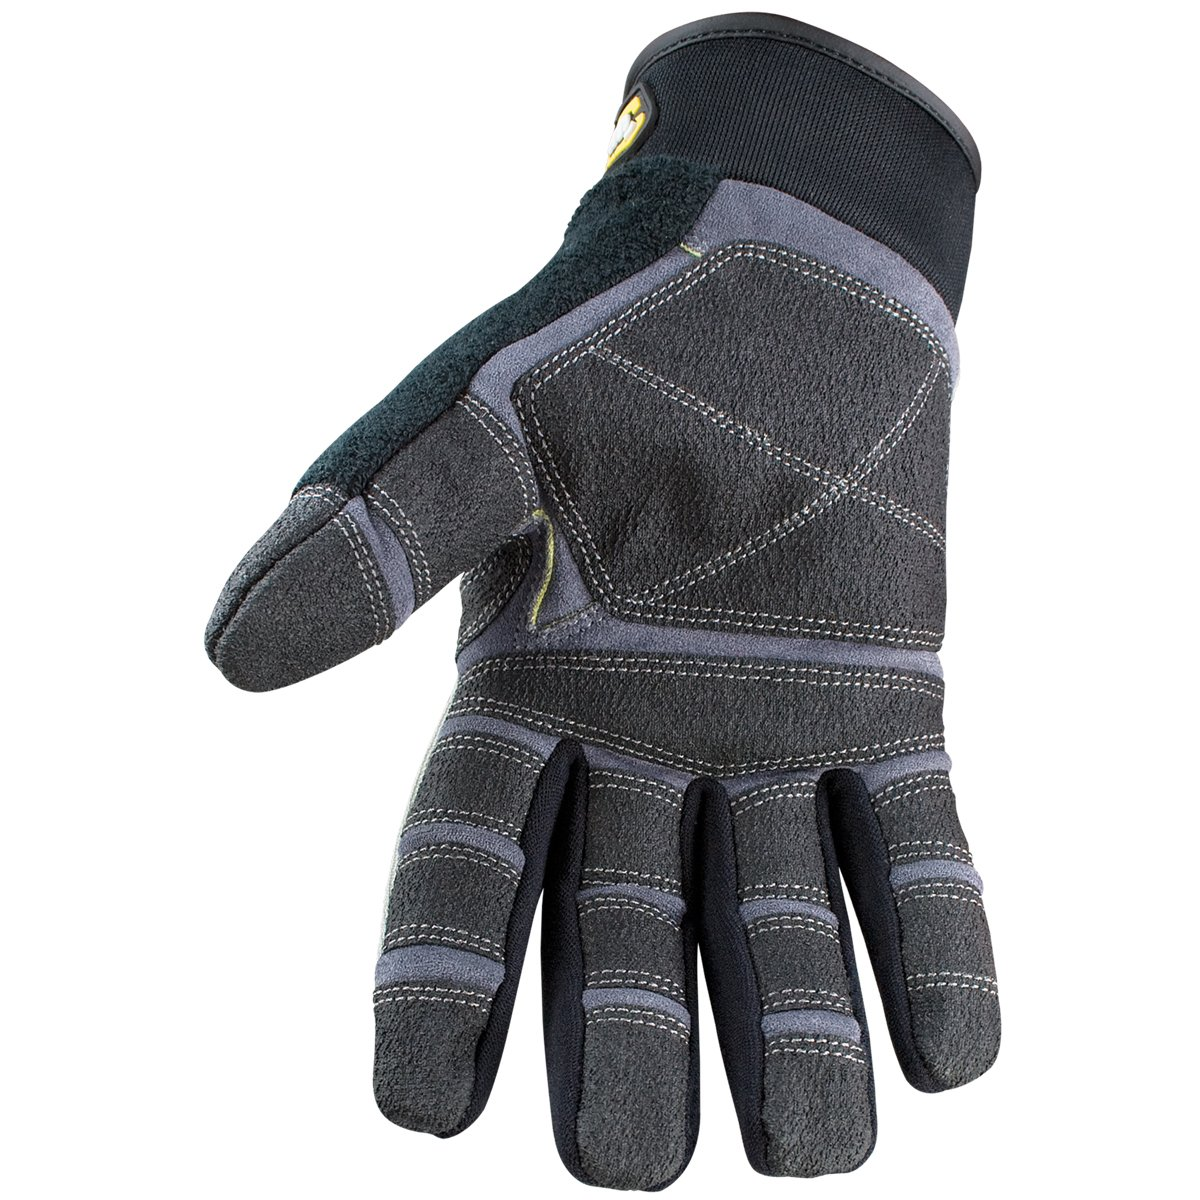 Youngstown Glove 05-3080-70-L General Utility Lined with KEVLAR Glove Large, Gray by Youngstown Glove Company (Image #2)